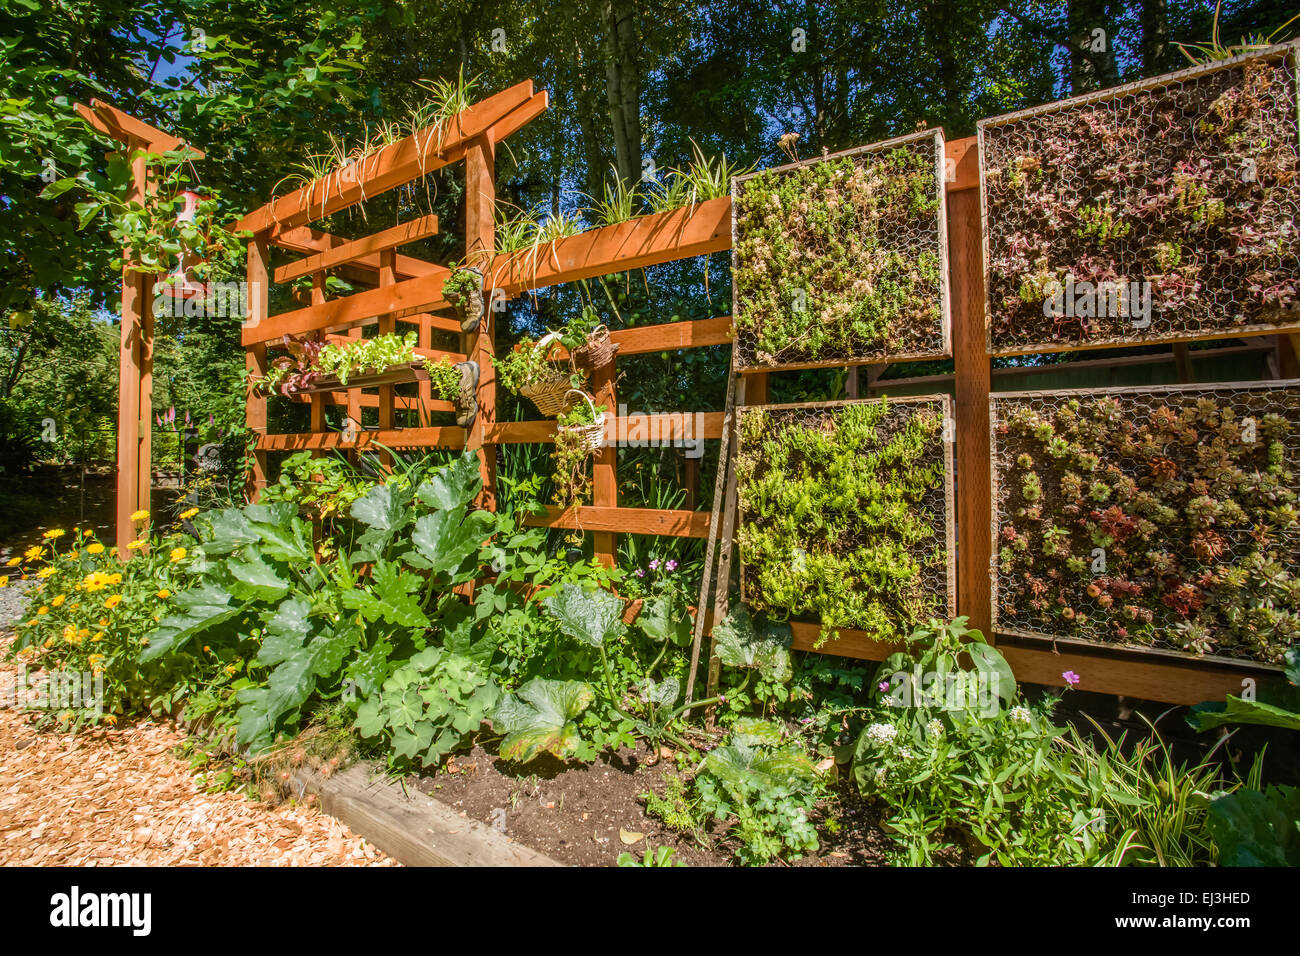 vertical vegetable garden growing on a beautiful wooden